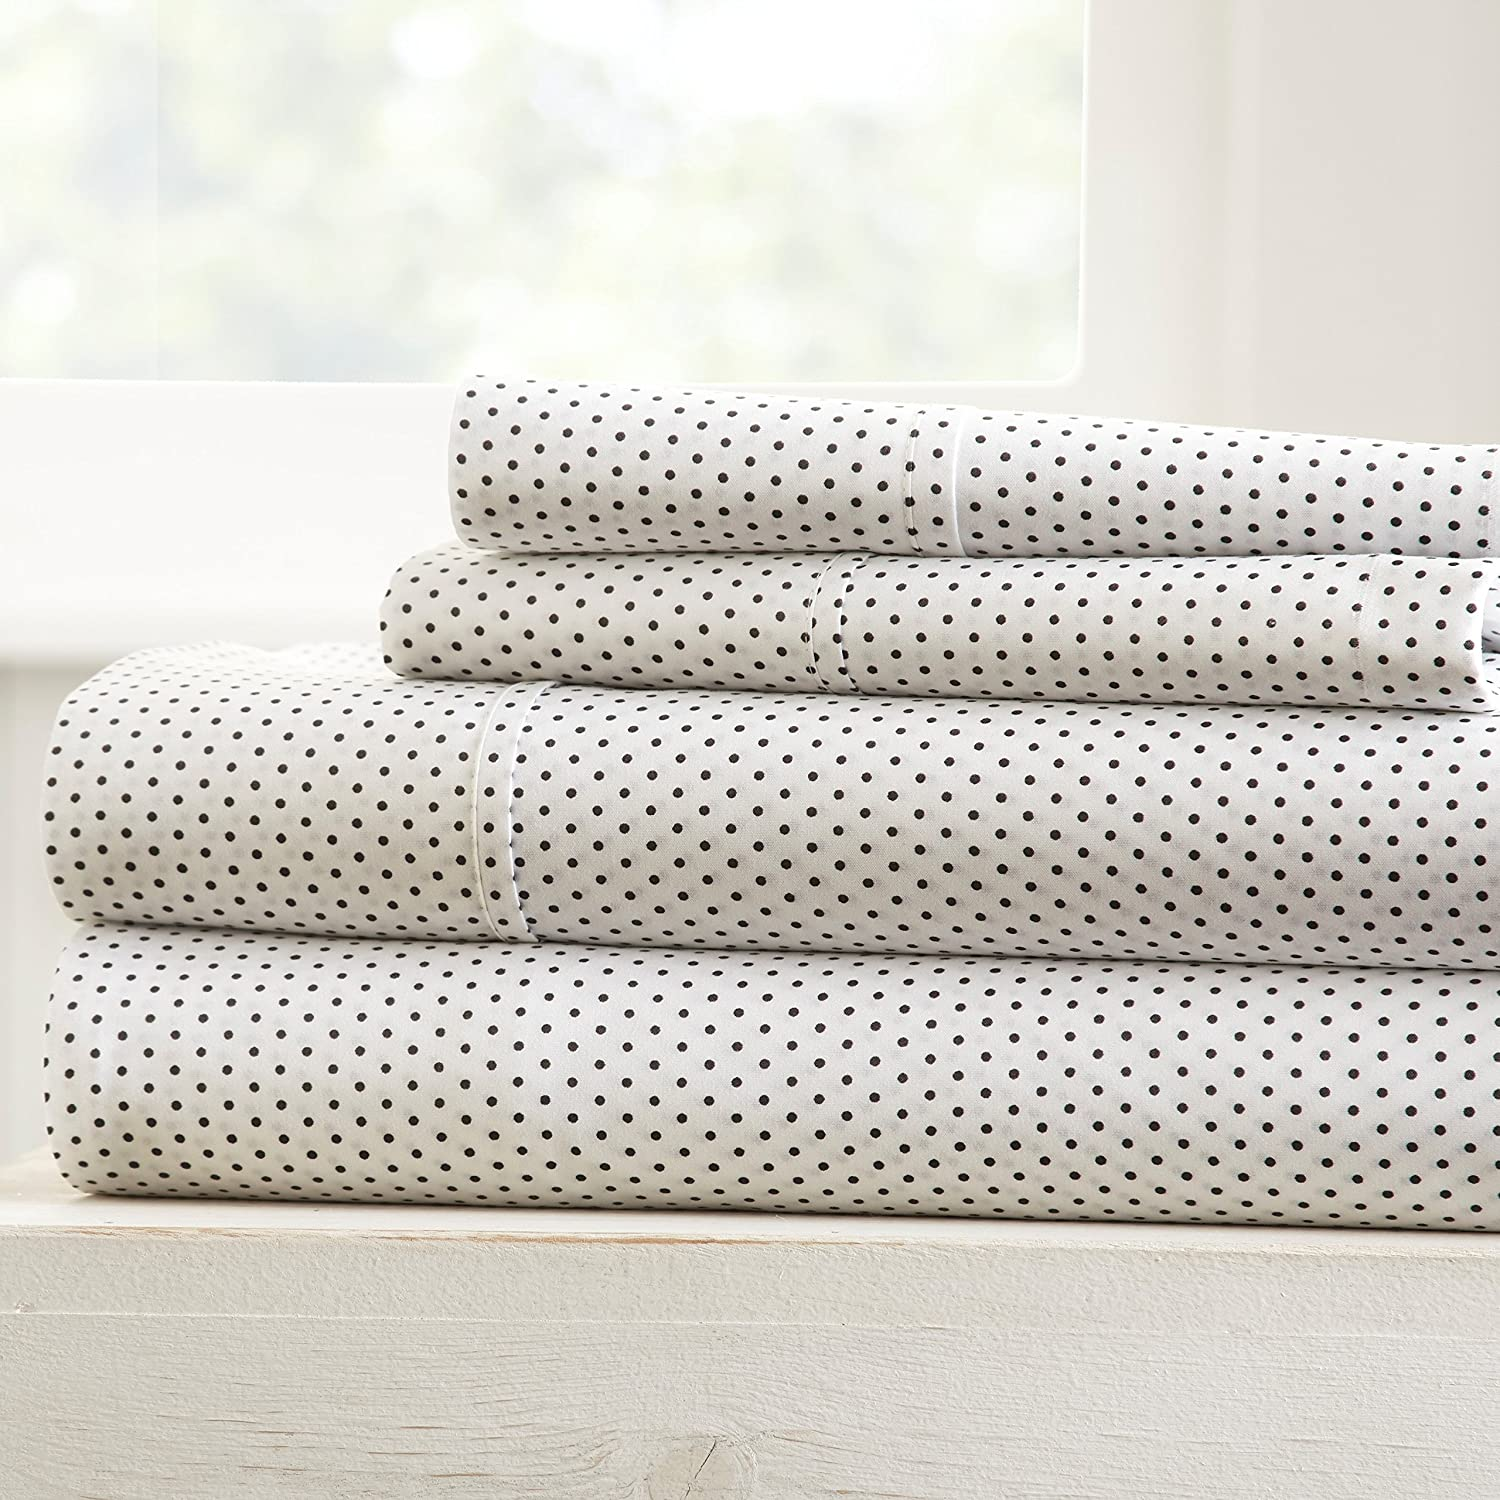 Becky Cameron Printed Stippled Patterned Quality 4 Piece Sheet Set, Queen, Gray